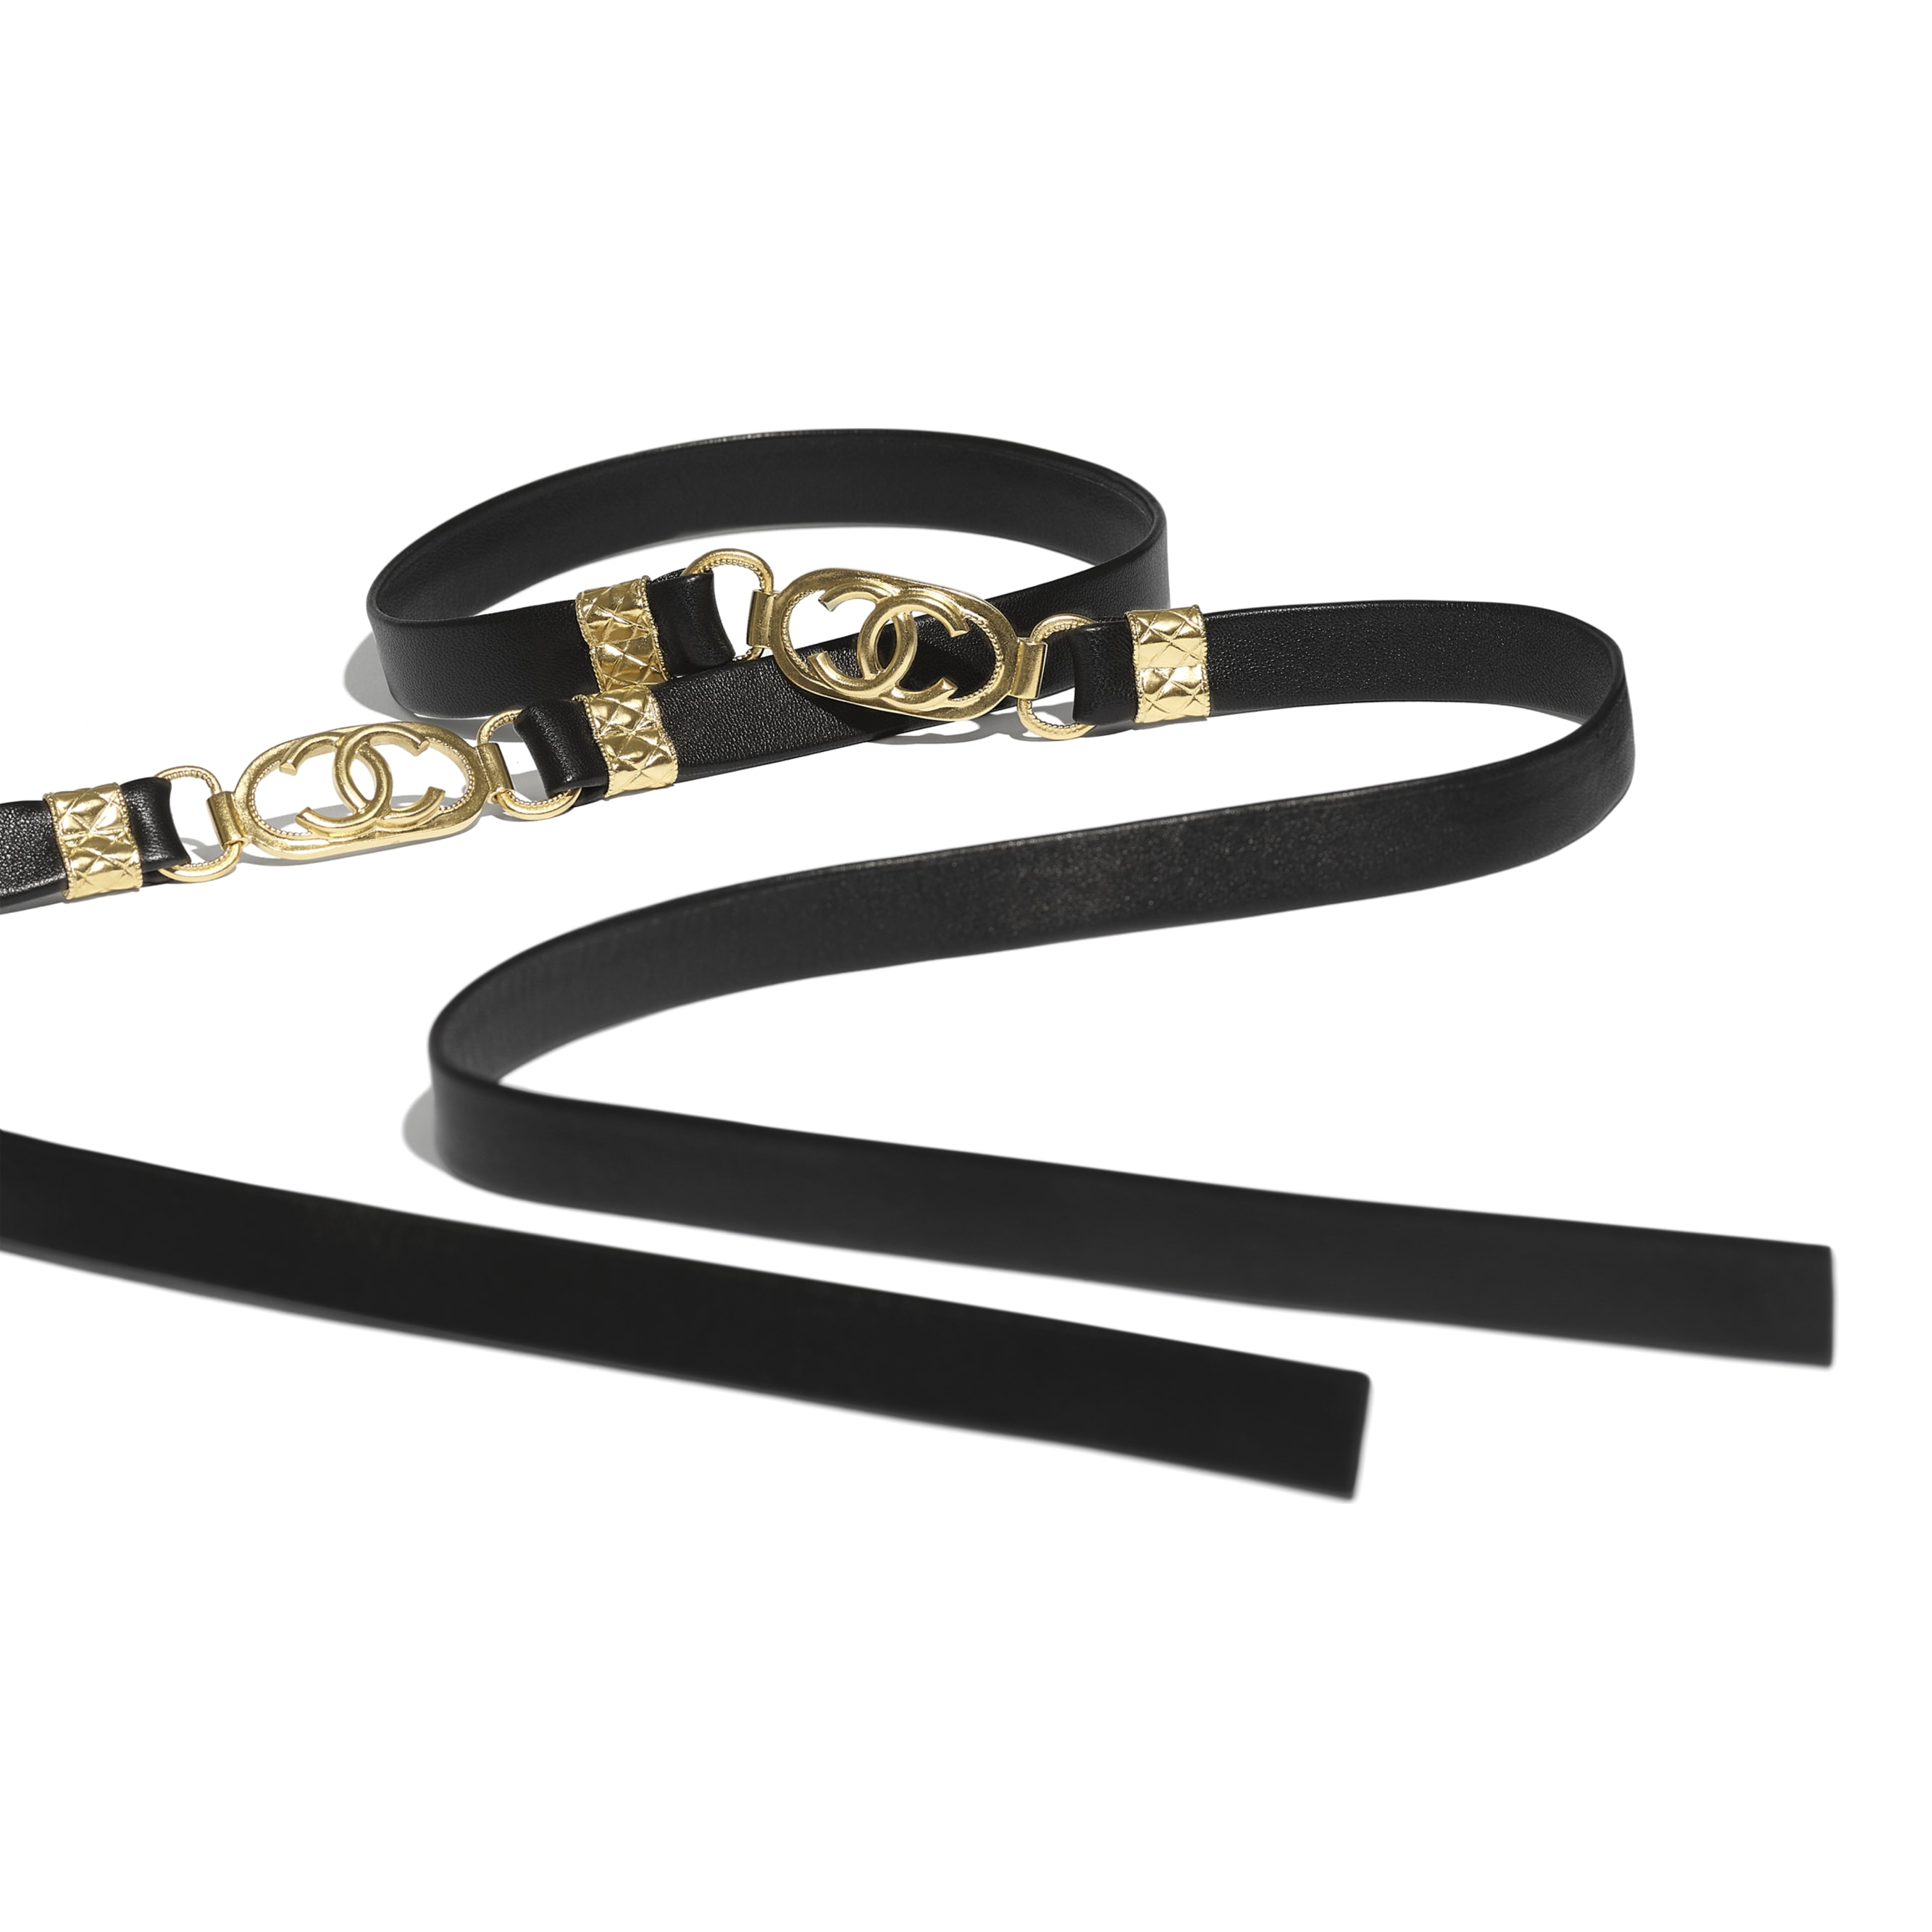 Belt - Black - Lambskin & Gold Metal  - CHANEL - Alternative view - see standard sized version